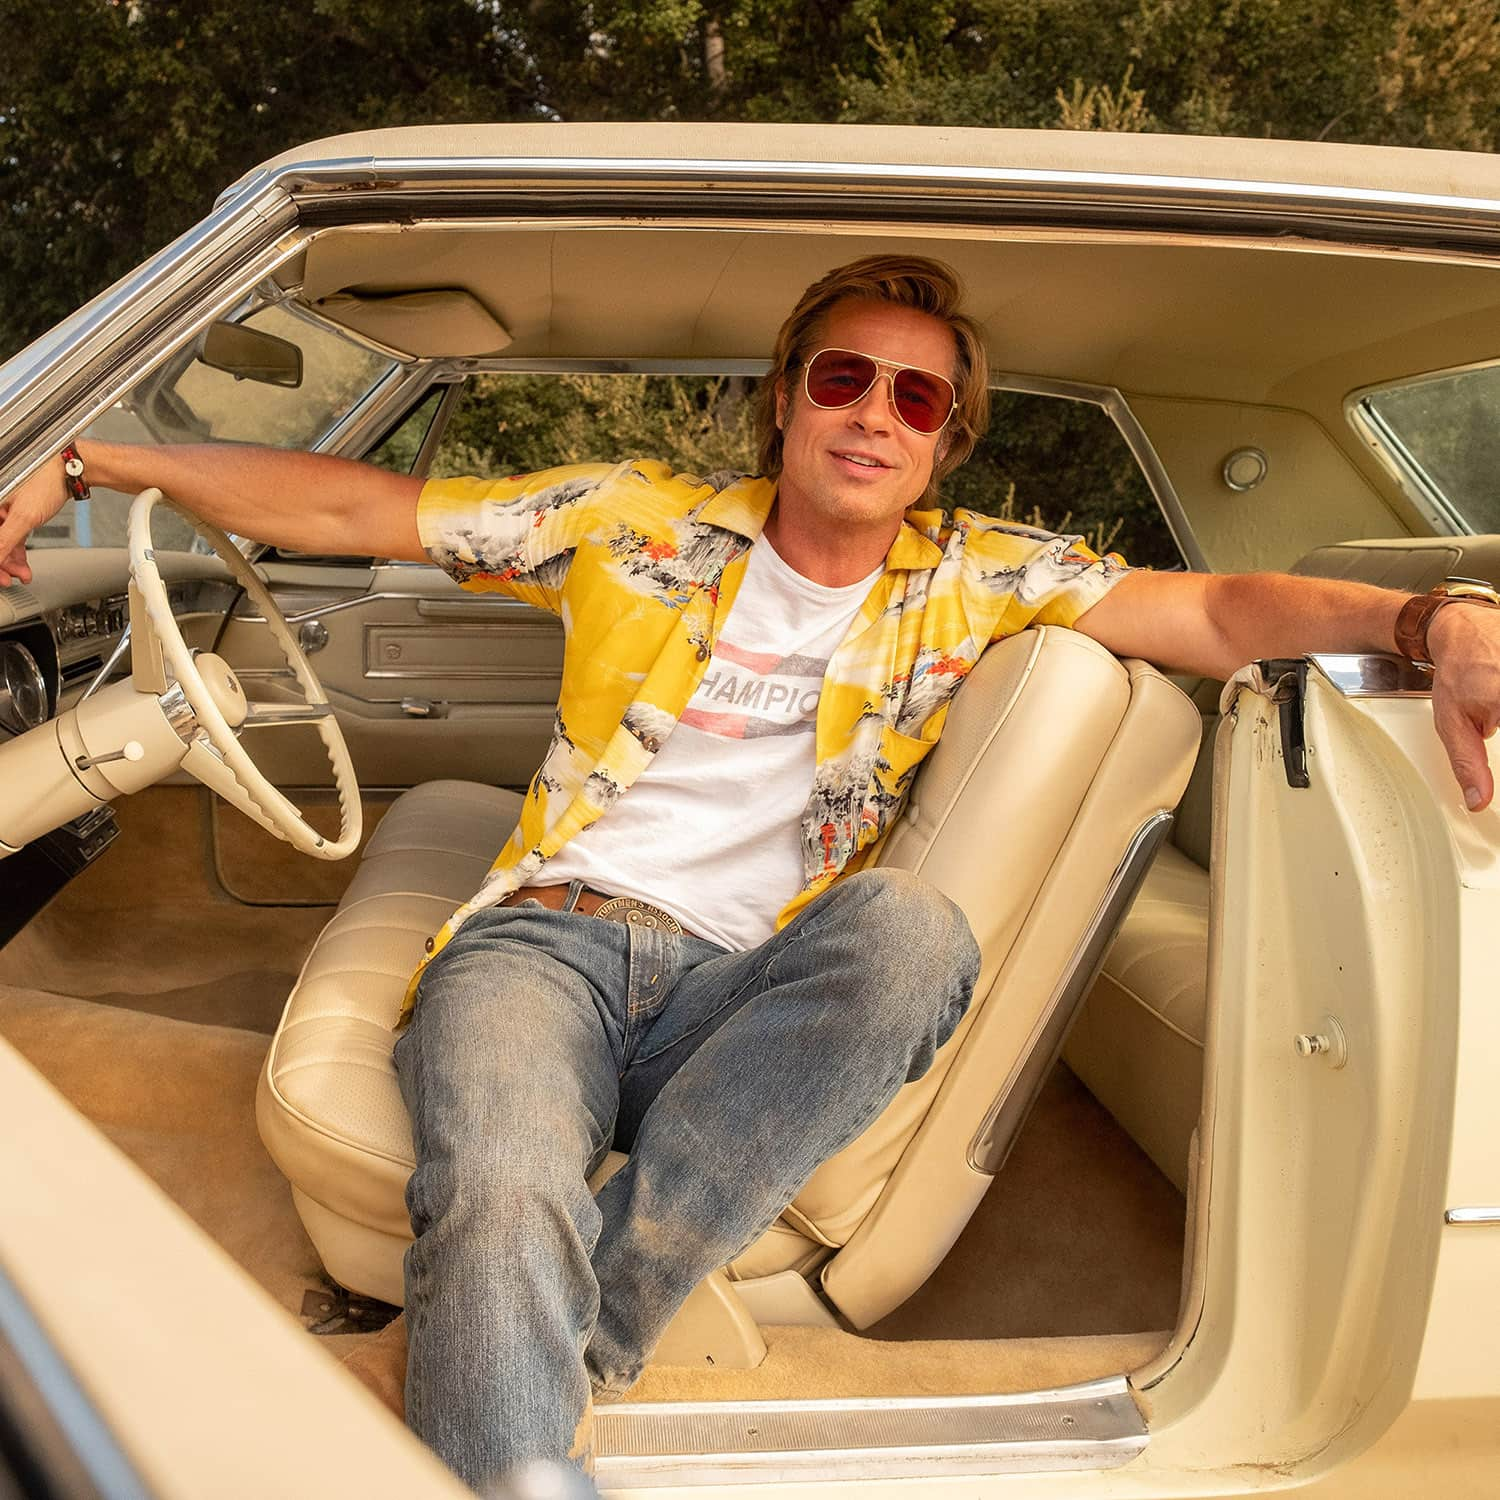 Brad Pitt in yellow Hawaiian shirt - Once upon a time in Hollywood